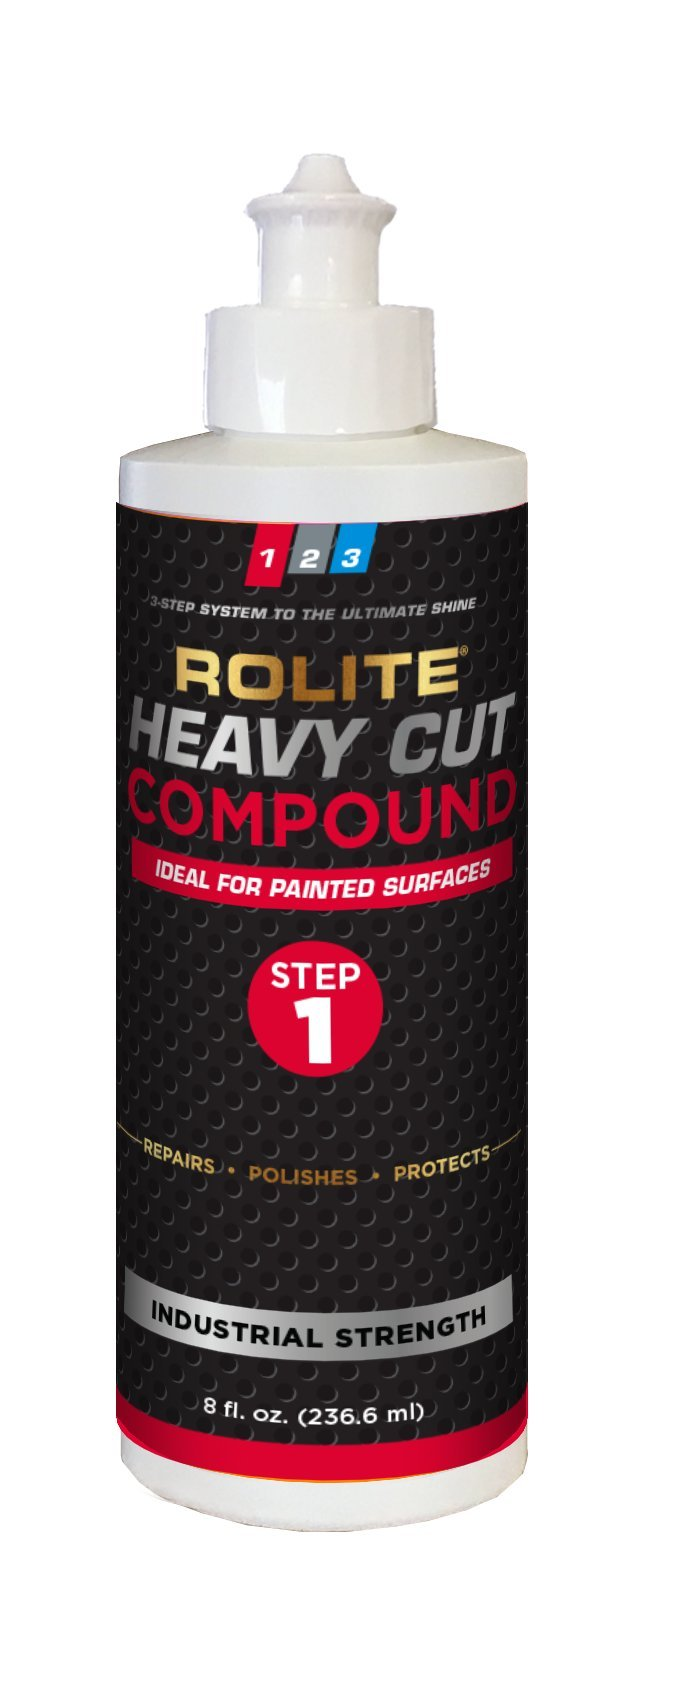 Rolite Heavy Cut Compound (8 fl. oz.) for Removing P1200 and Finer Scratches & Abrasion Marks for Automotive Clear-Coat Paints, Low Sling, No Mess